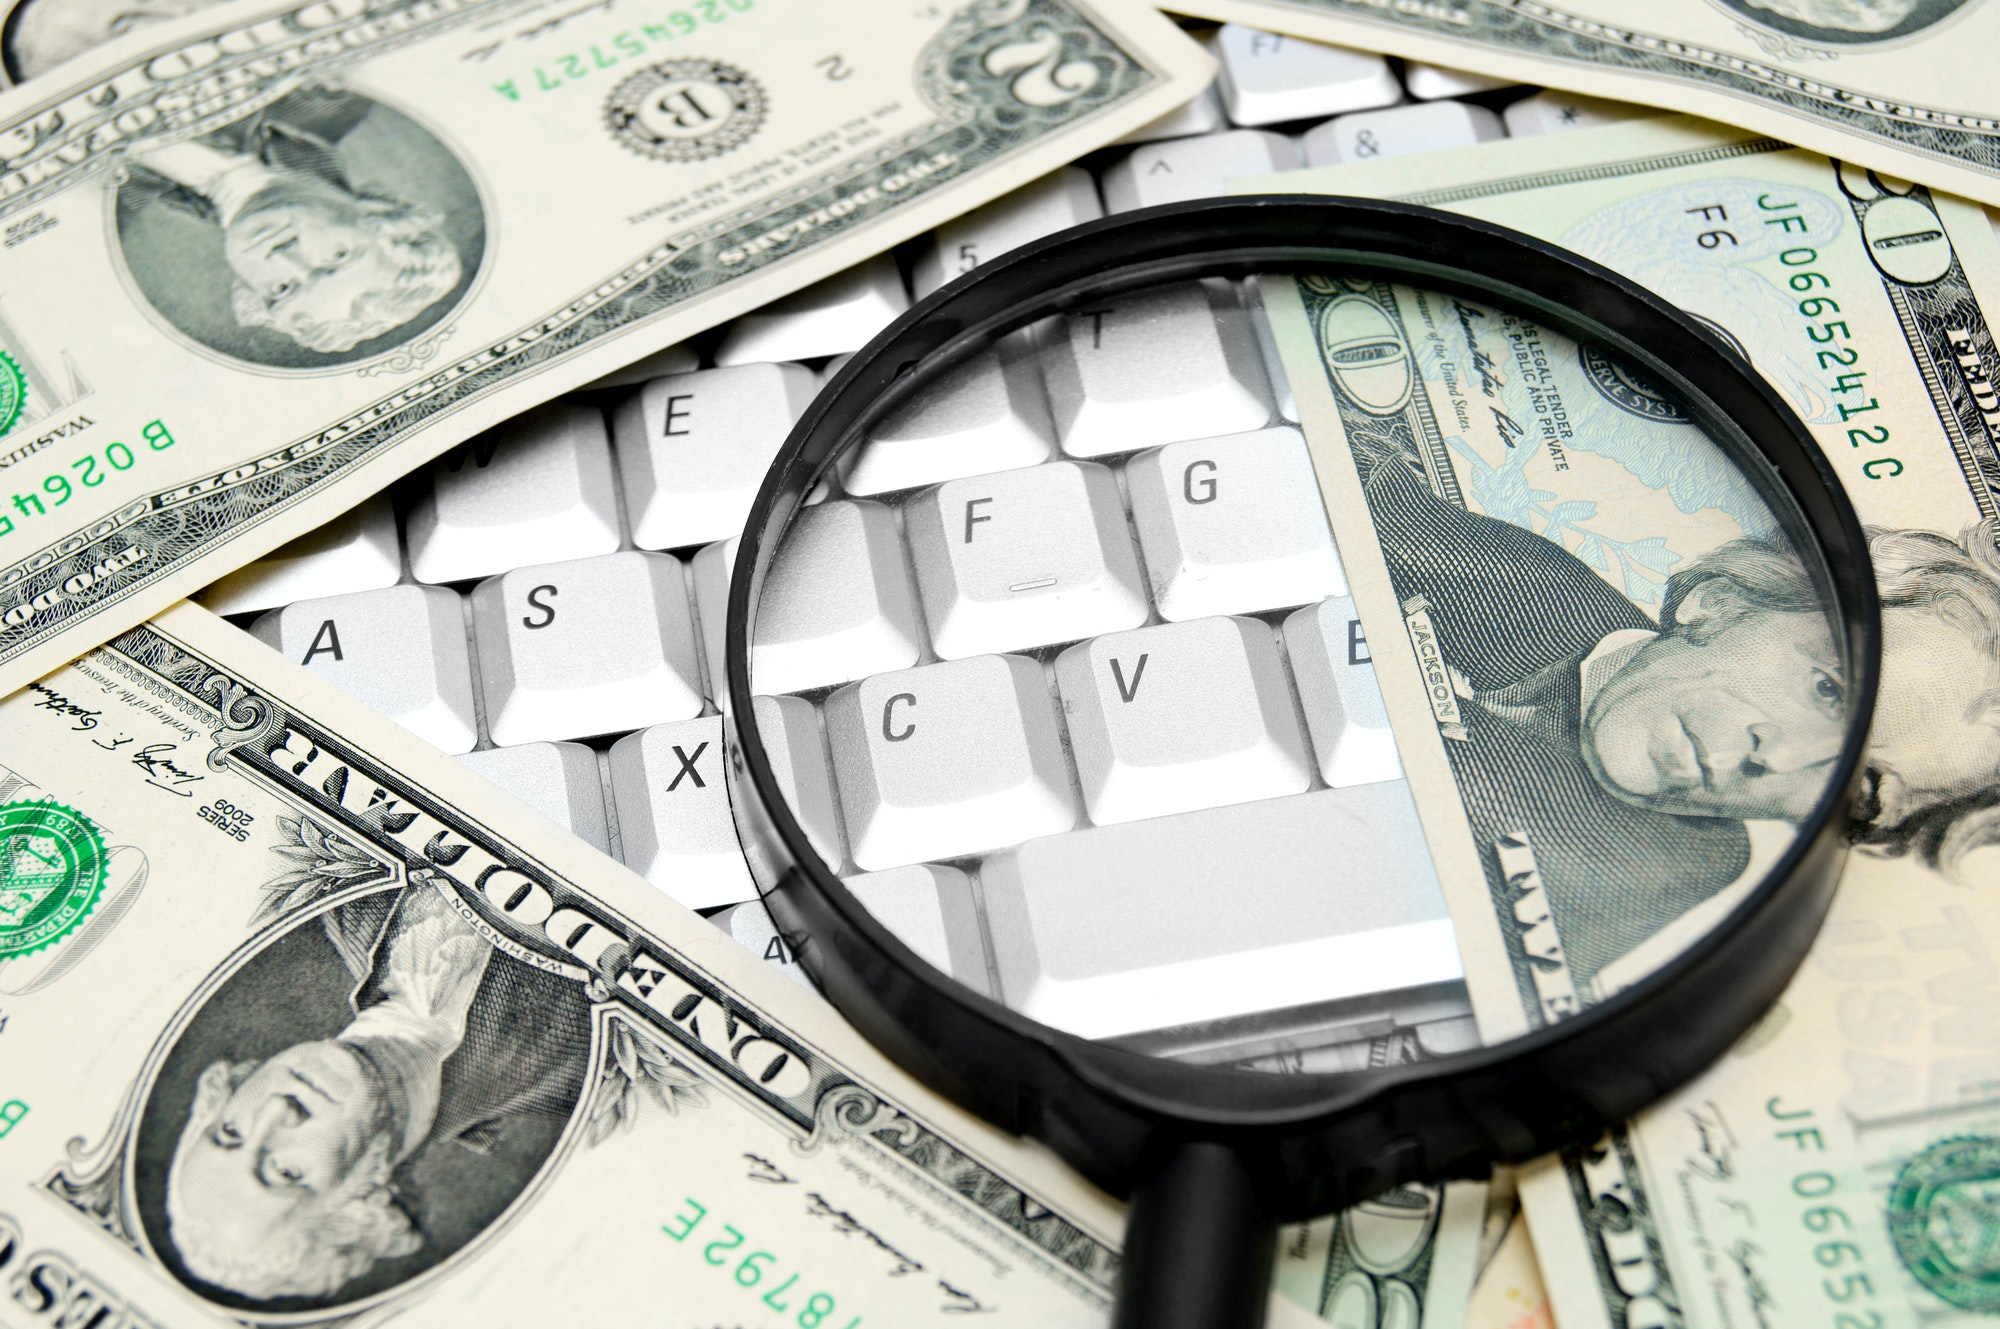 Money and magnifier for the keyboard.